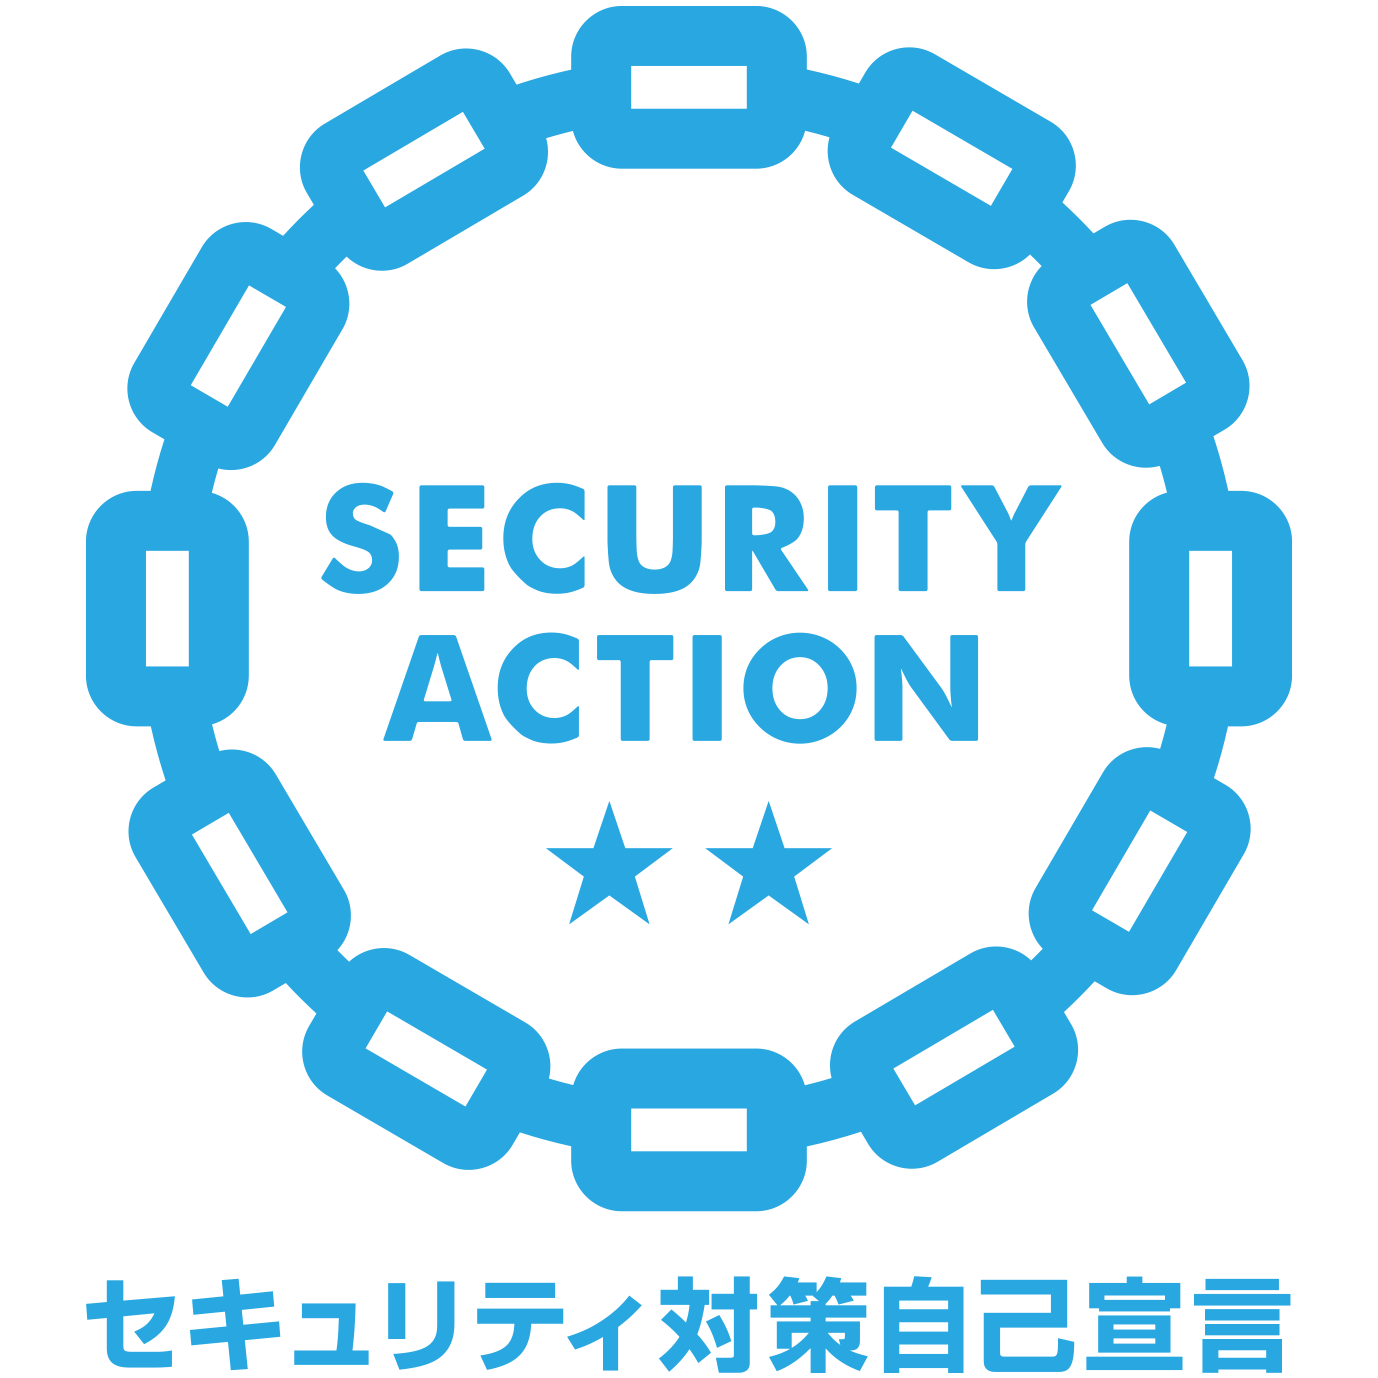 Security Action二つ星